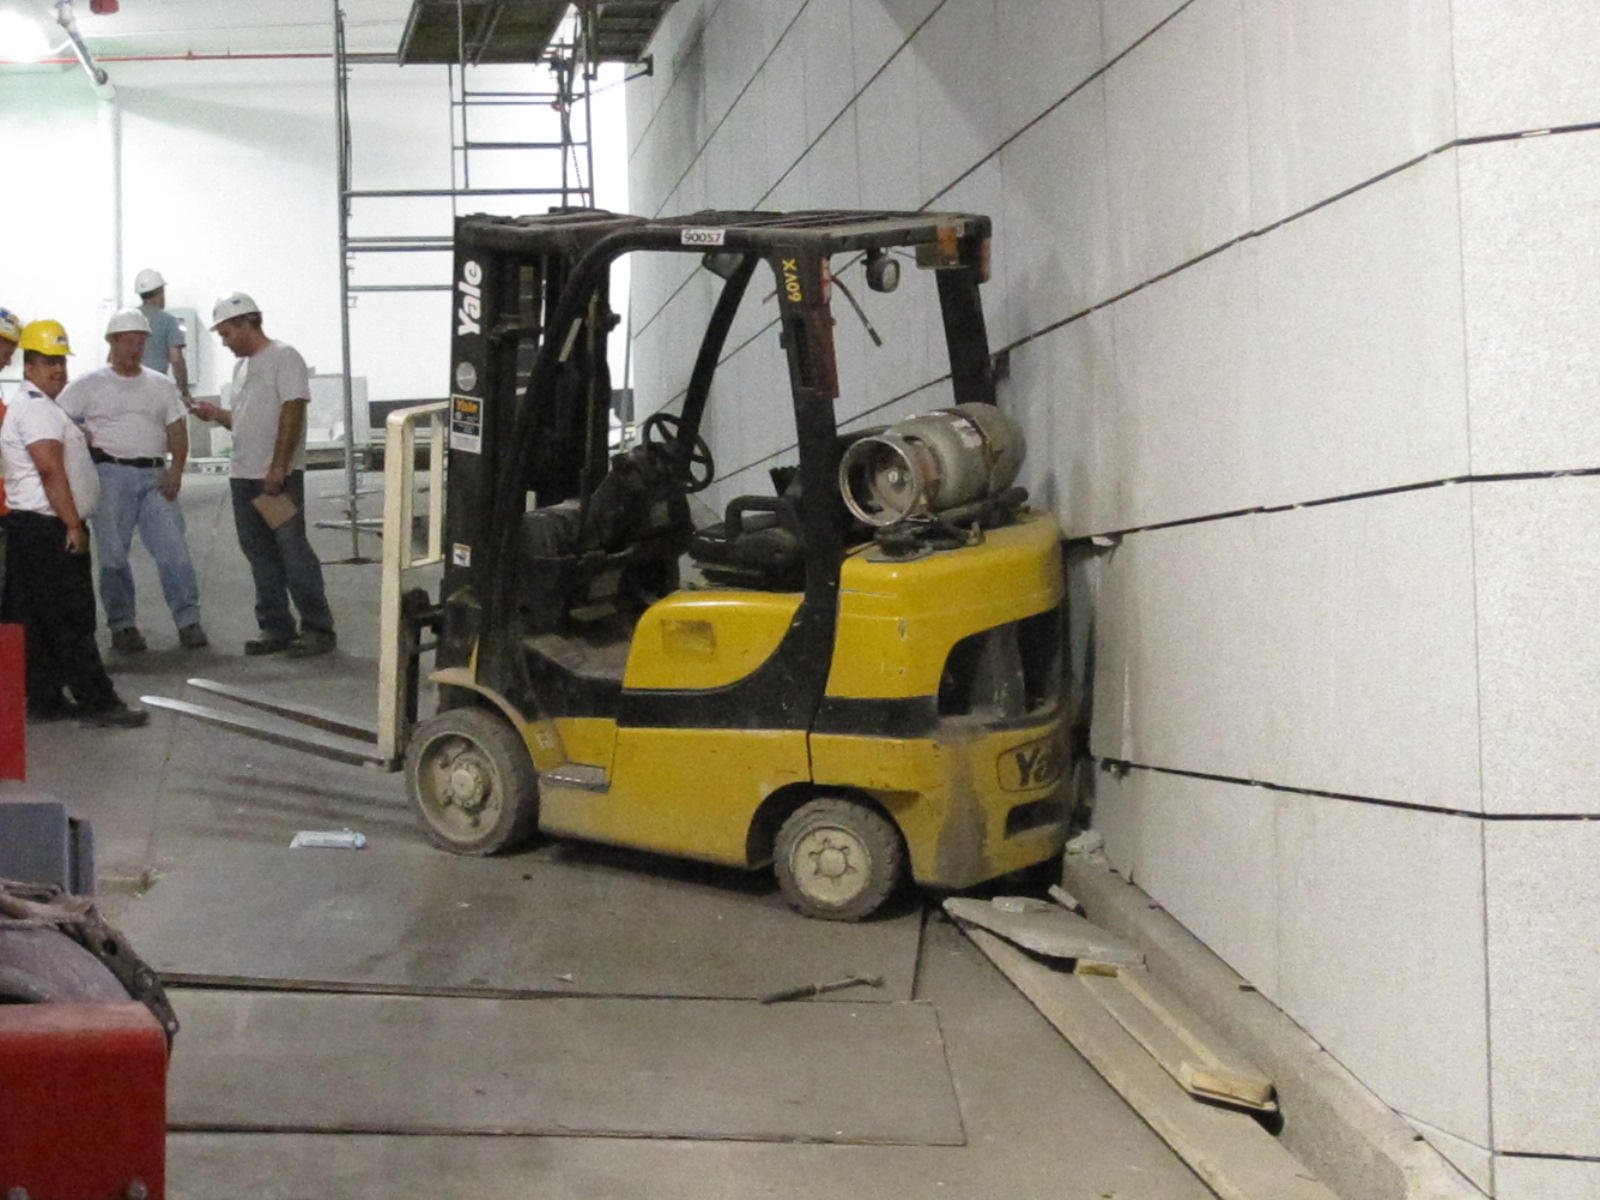 forklift accident Have you been hurt in a forklift accident in arizona contact the phillips law group today for a free evaluation of your claim.